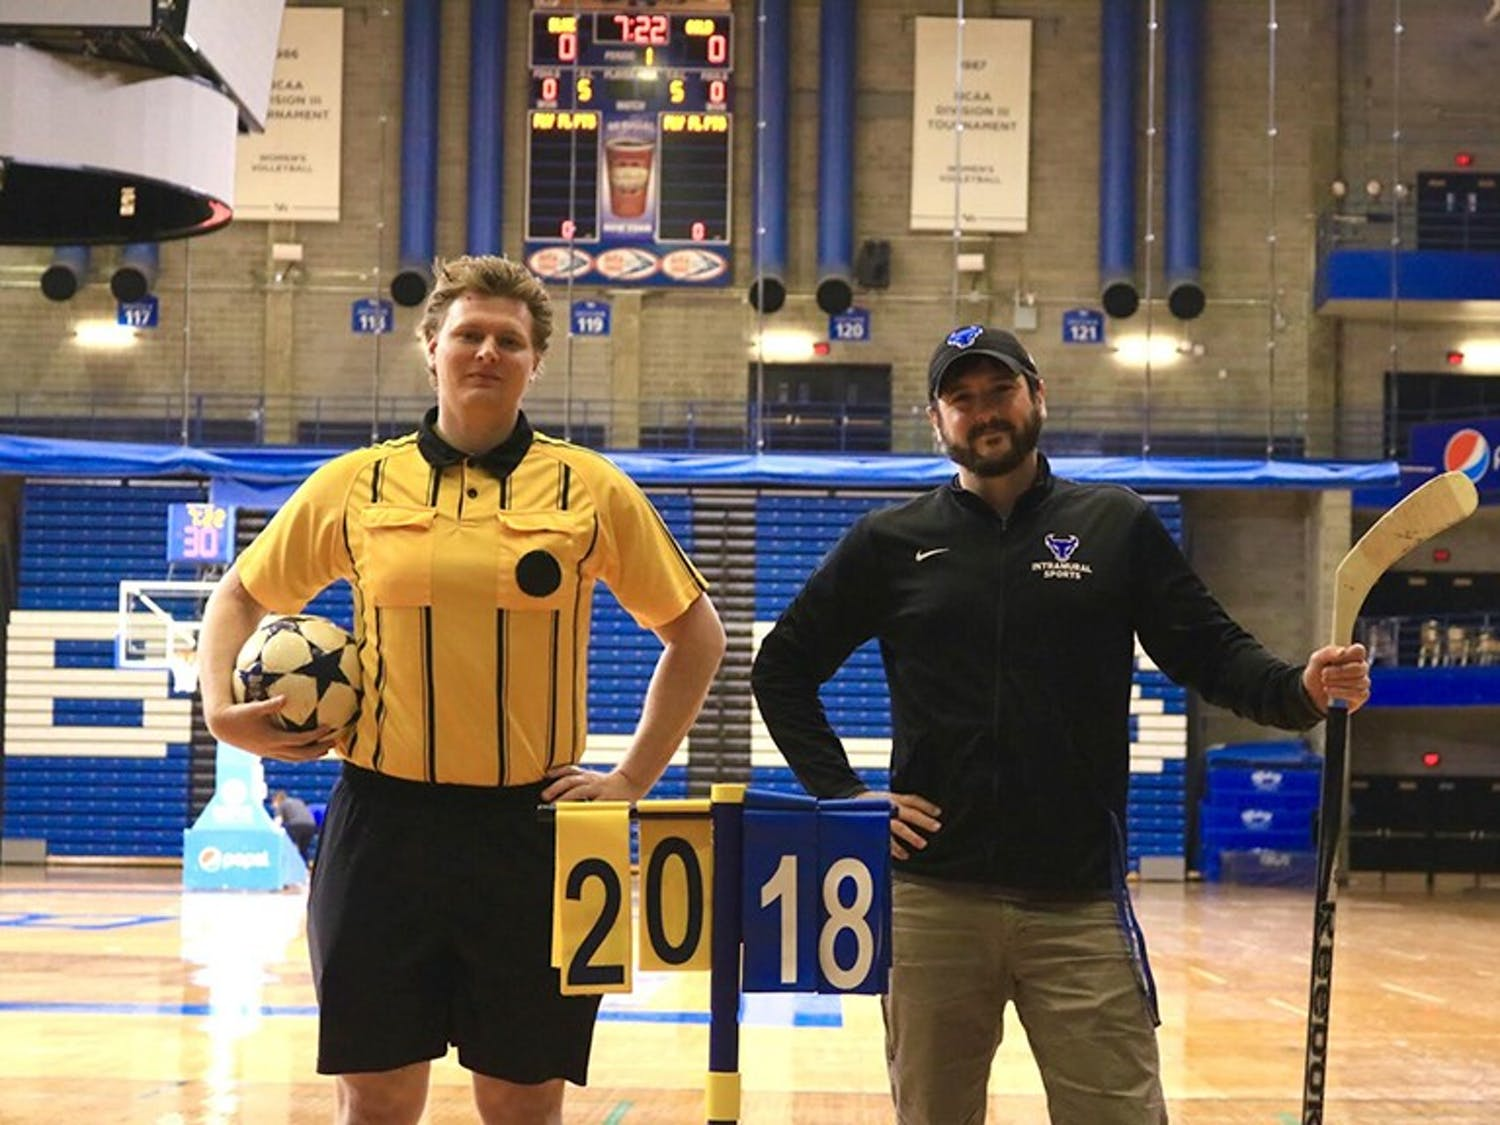 Chris McClure, assistant director of Intramural and Sports program, is striving to improve the program by recruiting players and offering more athletics and sporting events to students across campus.